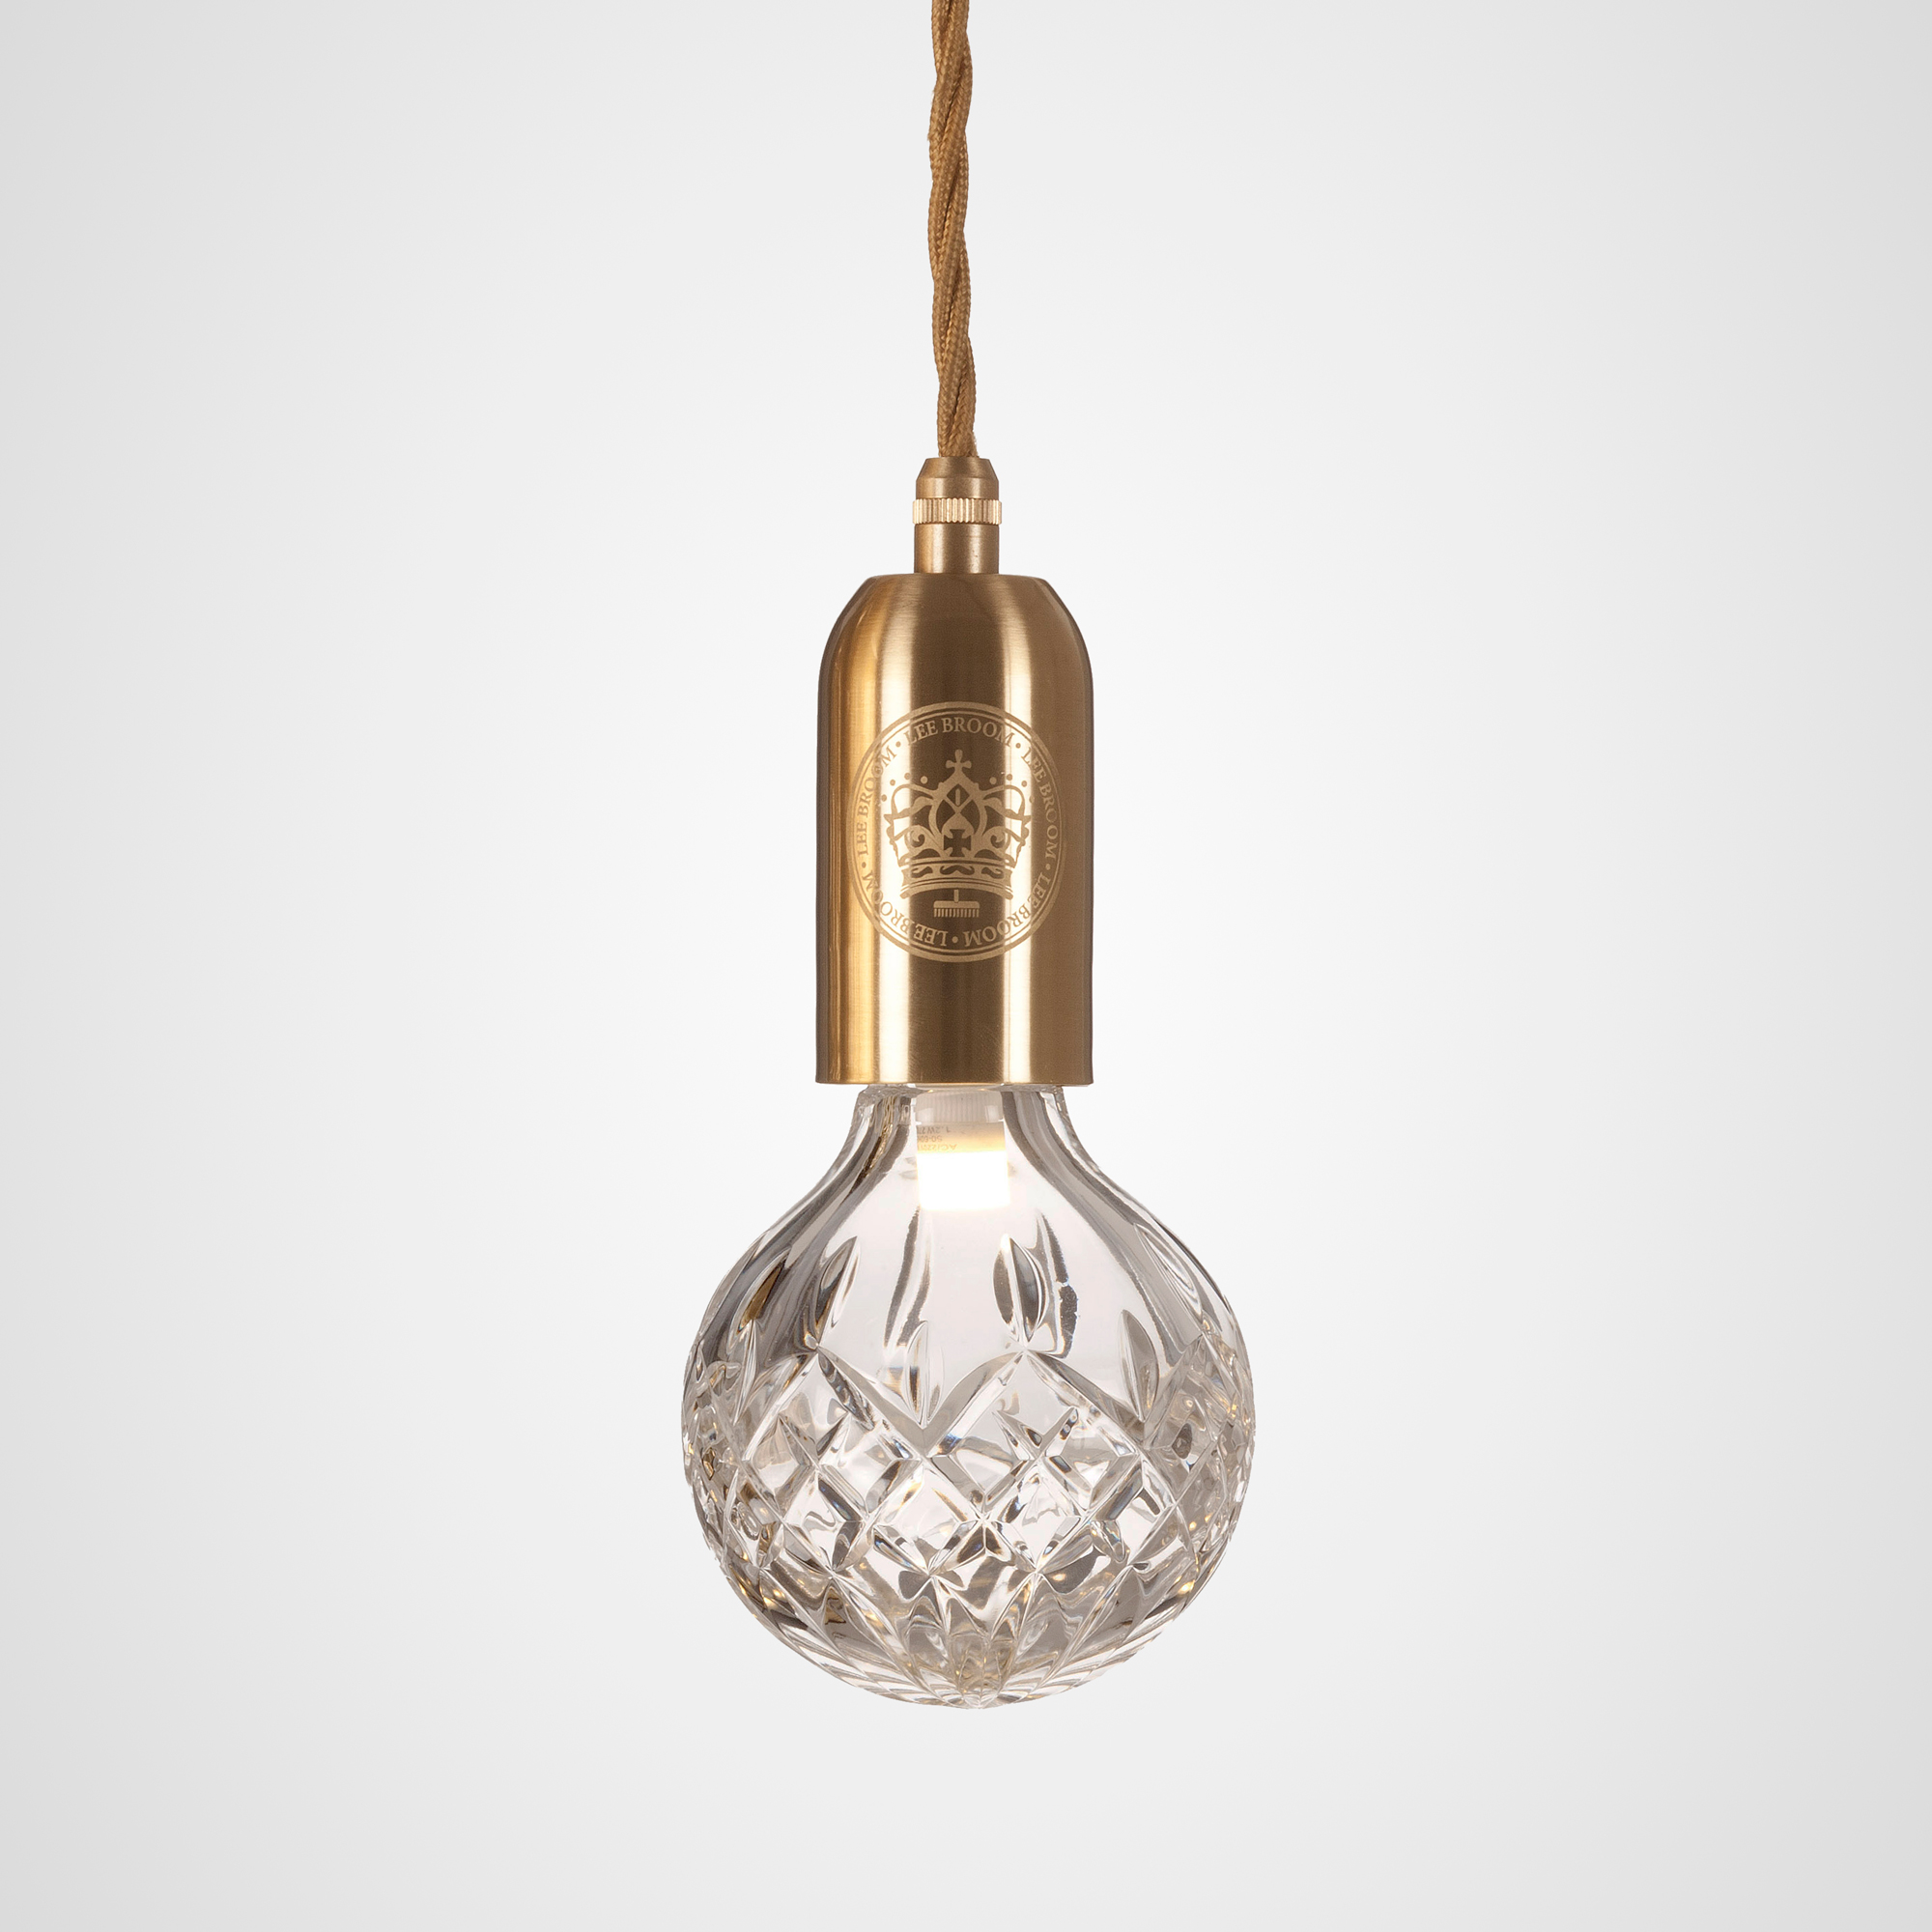 Bulb pendant by lee broom cb00121 crystal bulb pendant by lee broom cb00121 mozeypictures Choice Image